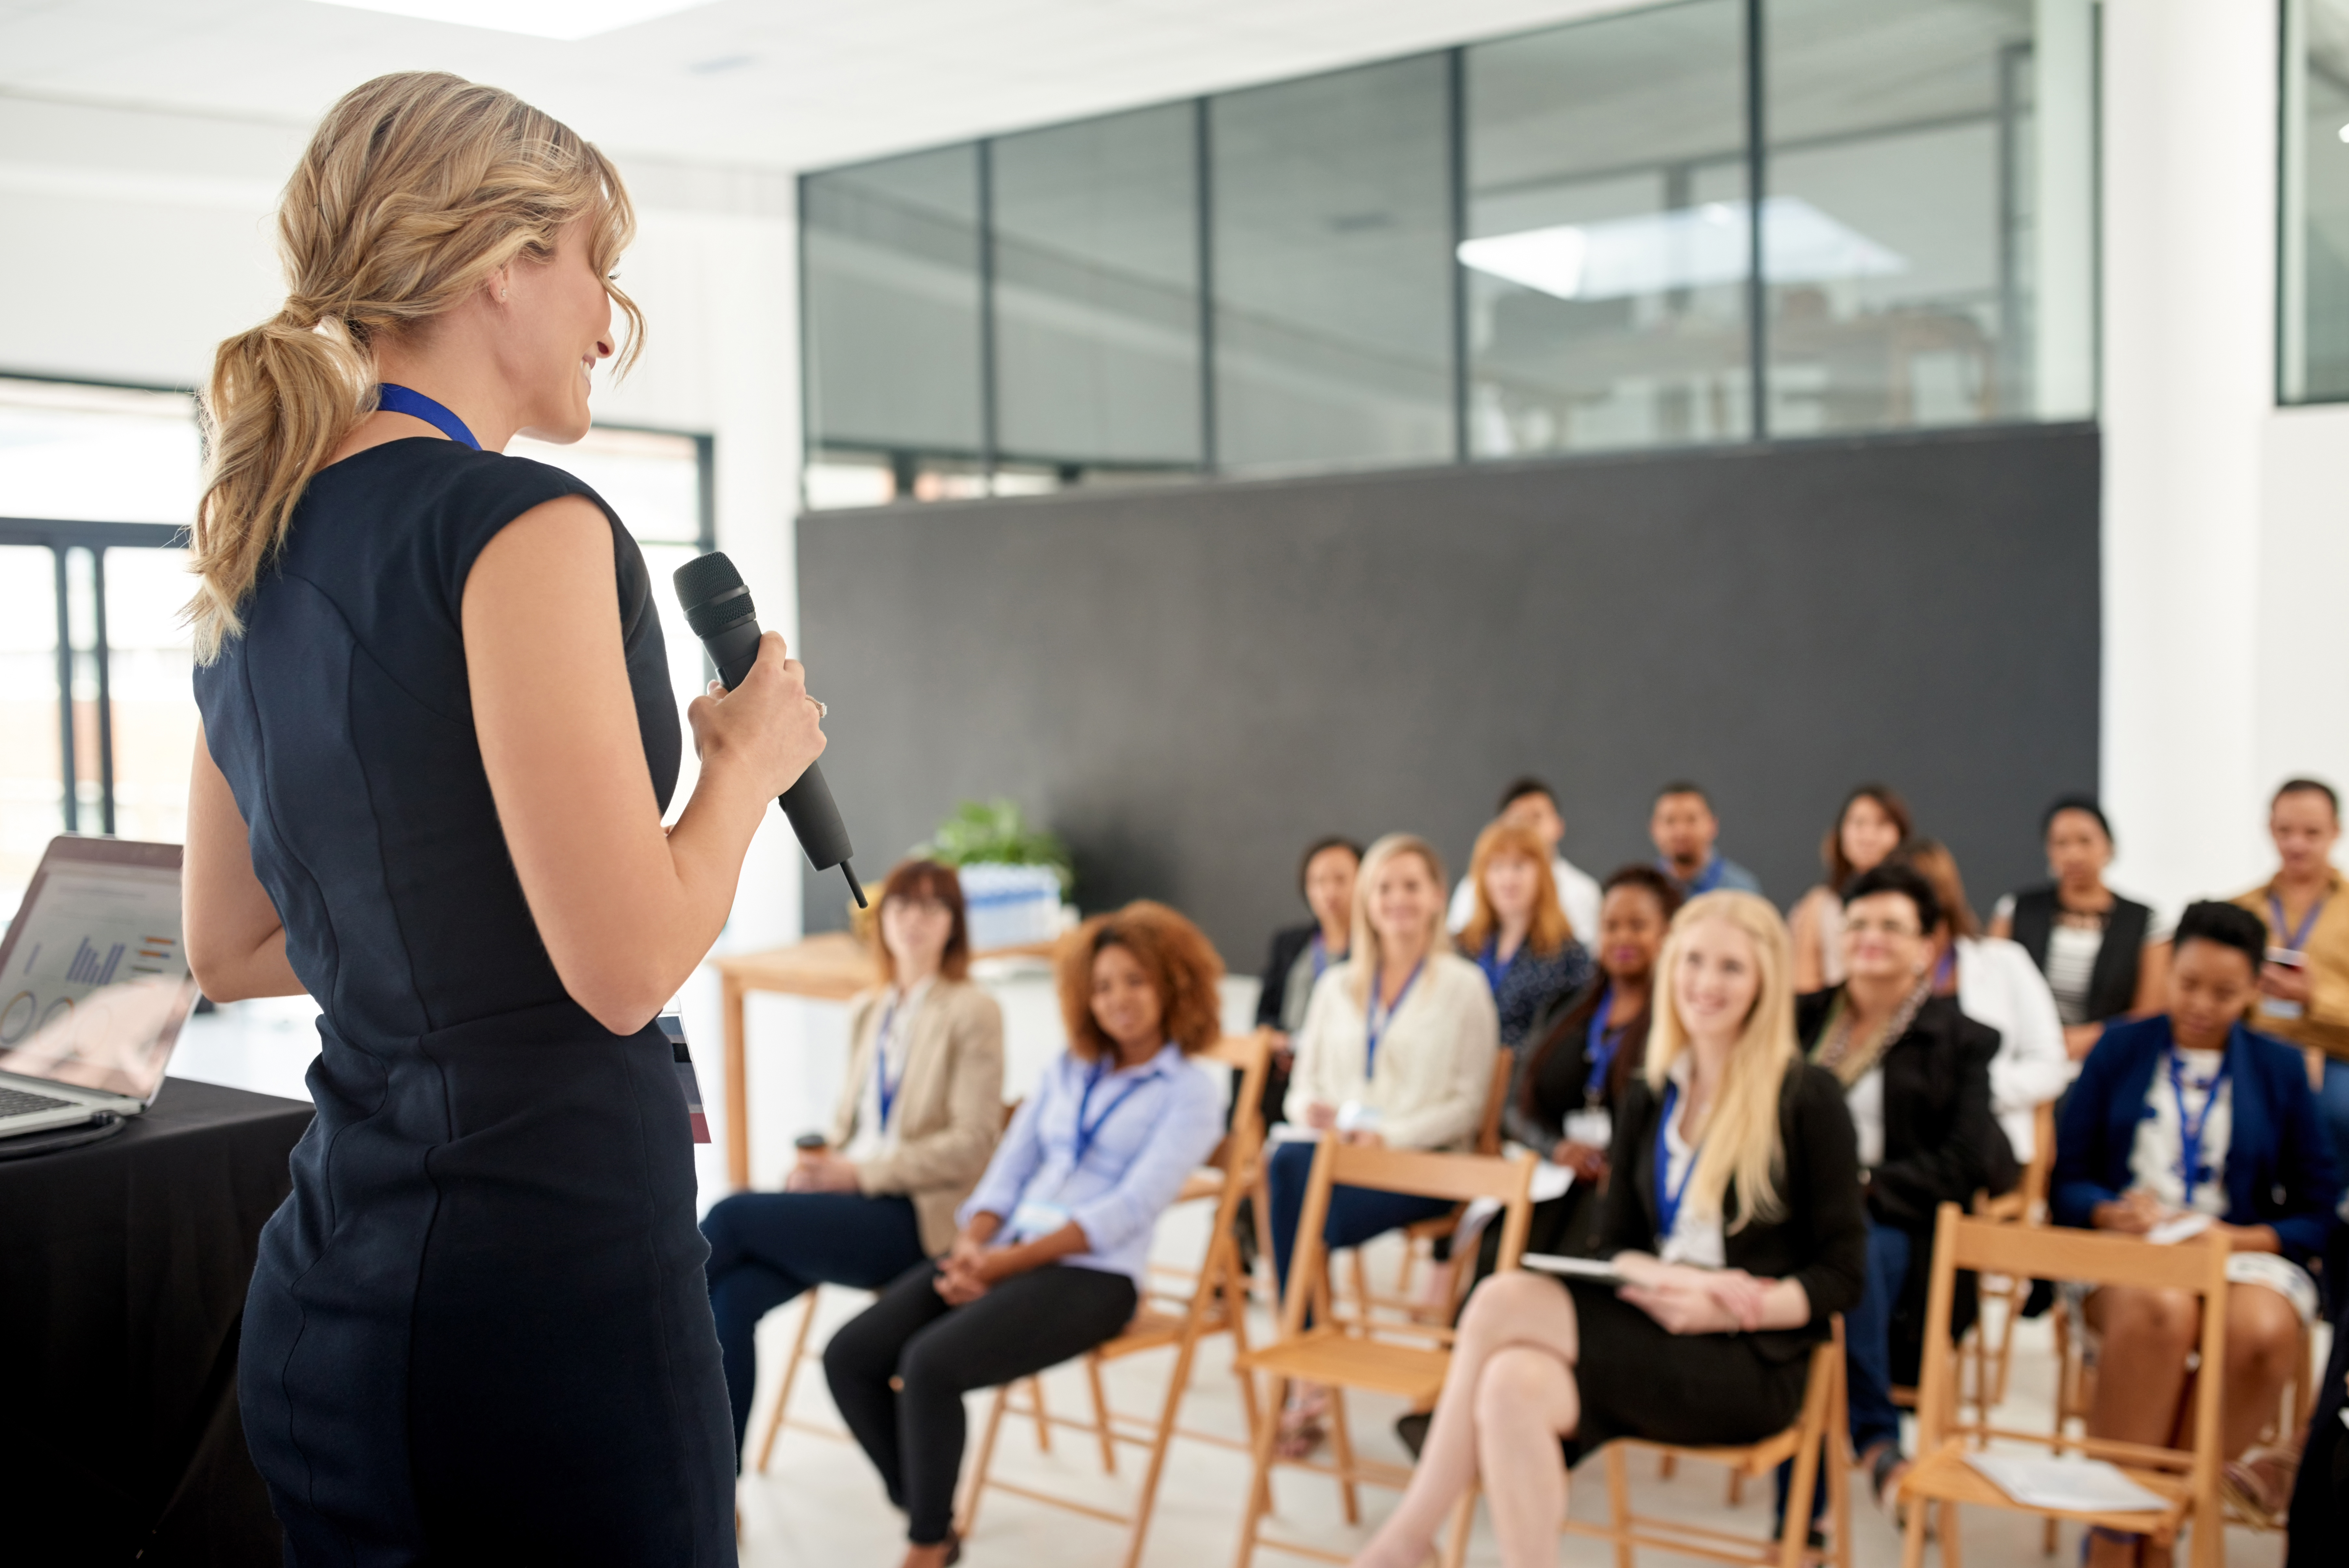 Ideas for Closing Remarks at an Event | Career Trend